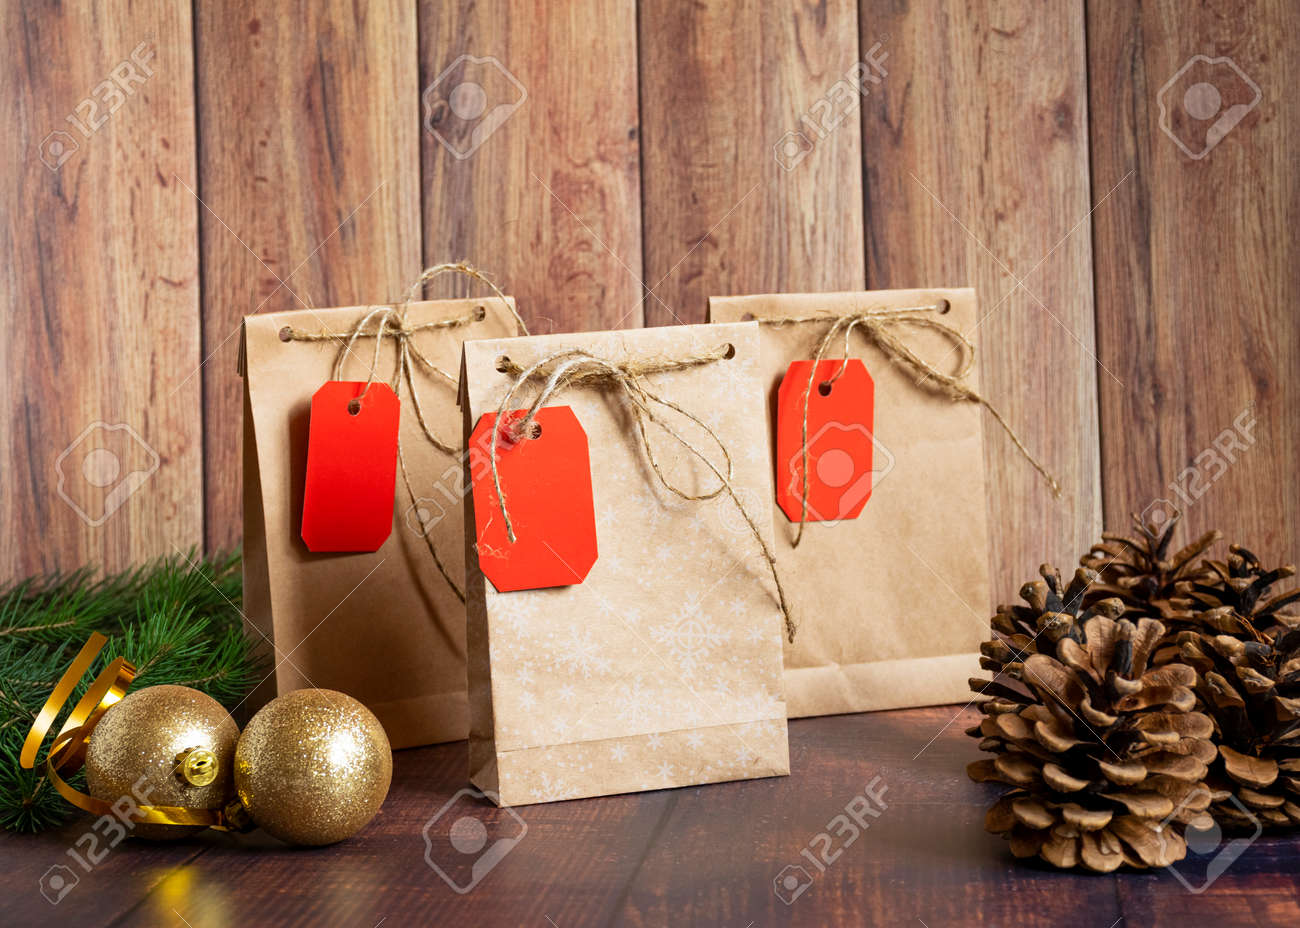 Vintage handmade gift boxes made of kraft paper on a wooden background in the Christmas style, decorated with golden Christmas balls, cones, fir branch. Christmas, New Year, winter holiday. Kraft package, holiday concept, top view, flat lay. Mocap. - 135332122